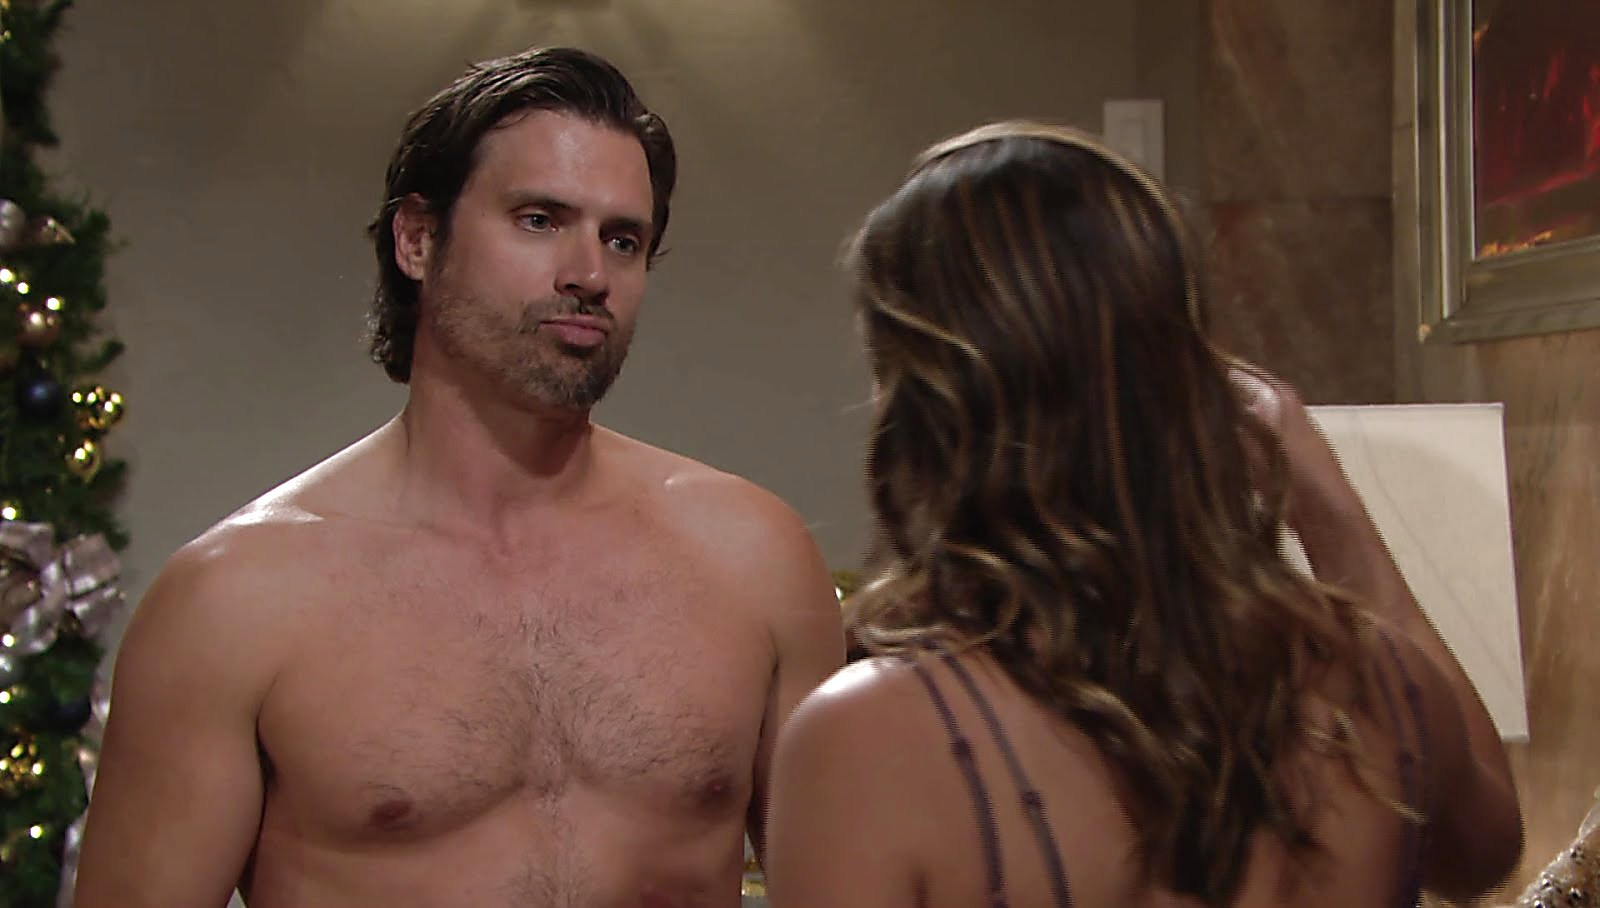 Joshua Morrow sexy shirtless scene December 29, 2017, 1pm